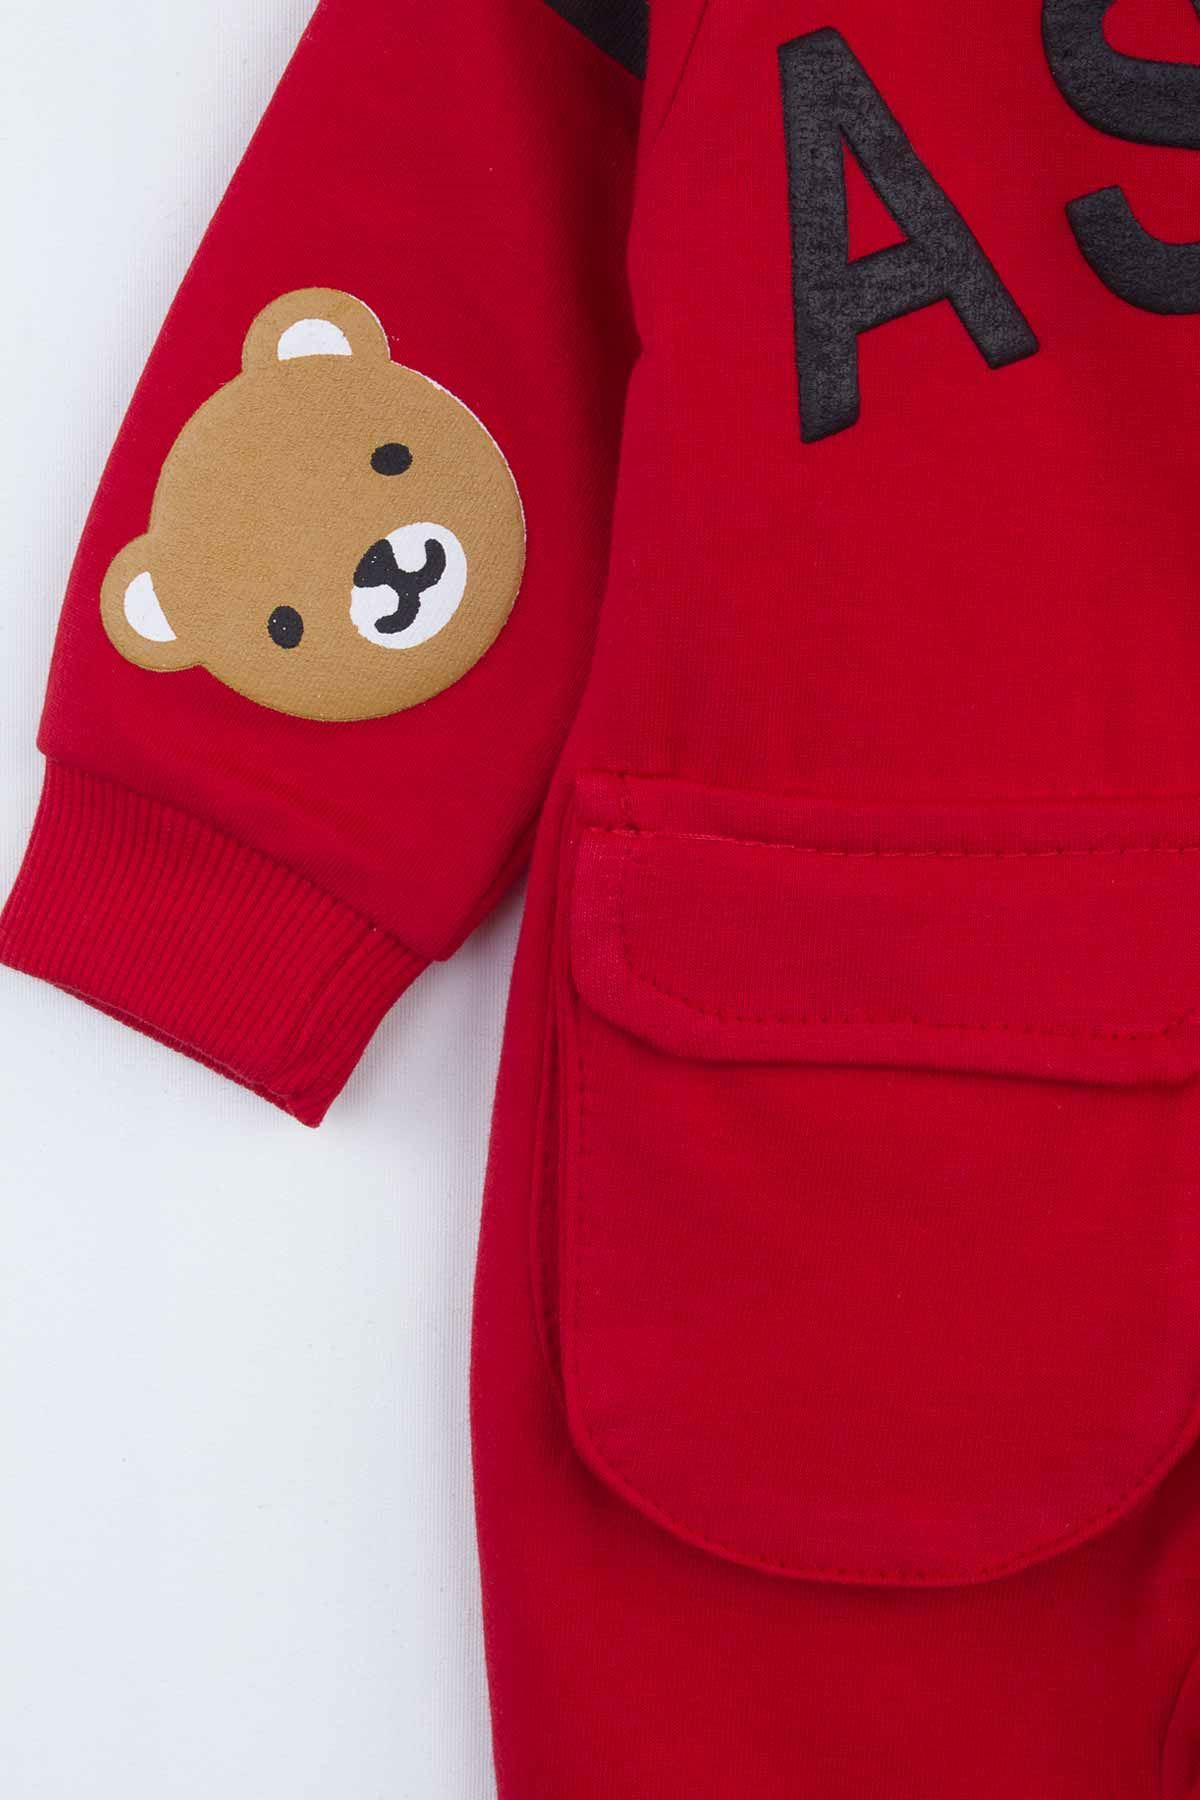 Red Hooded Baby Boy Rompers Fashion 2021 New Season Style Babies Clothes Outfit Cotton Comfortable Underwear for Boys Baby